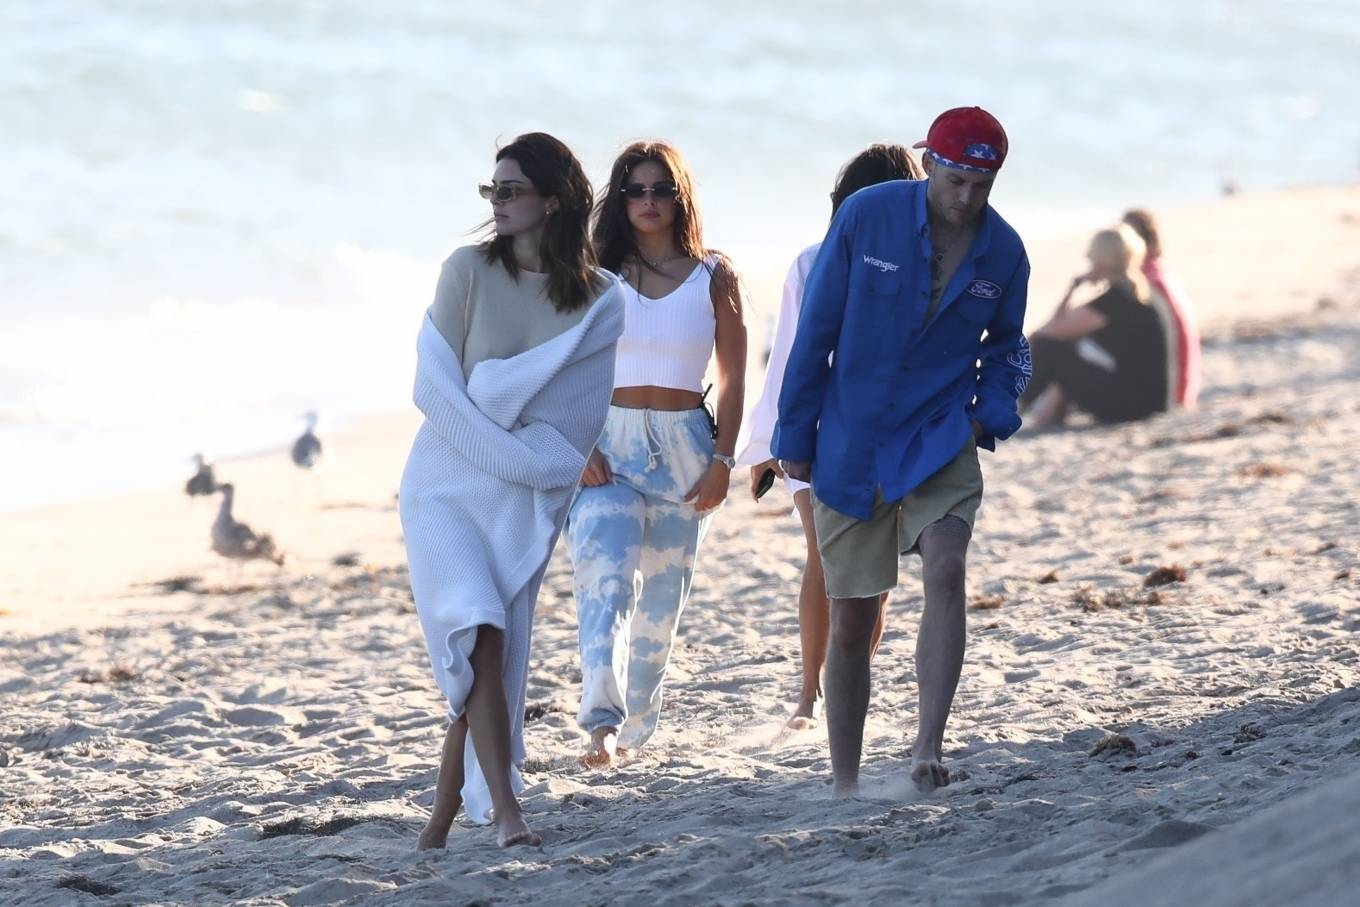 Kendall Jenner rocking a cream basic sweater with full sleeves and a crew neck